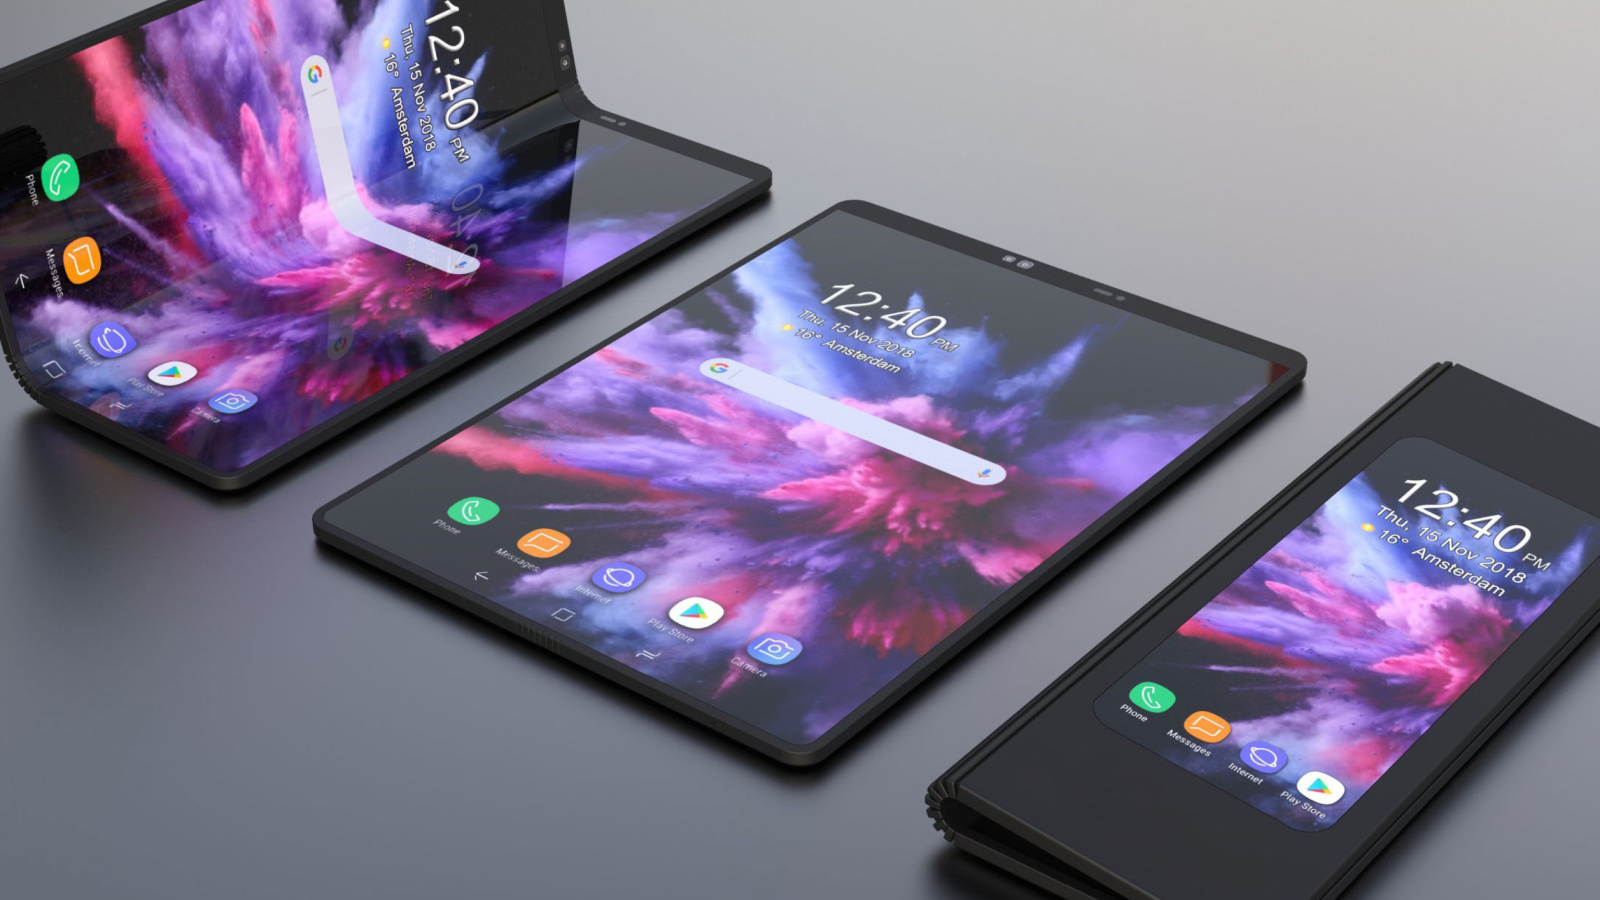 Samsung Galaxy Fold screenshot #1 1600x900